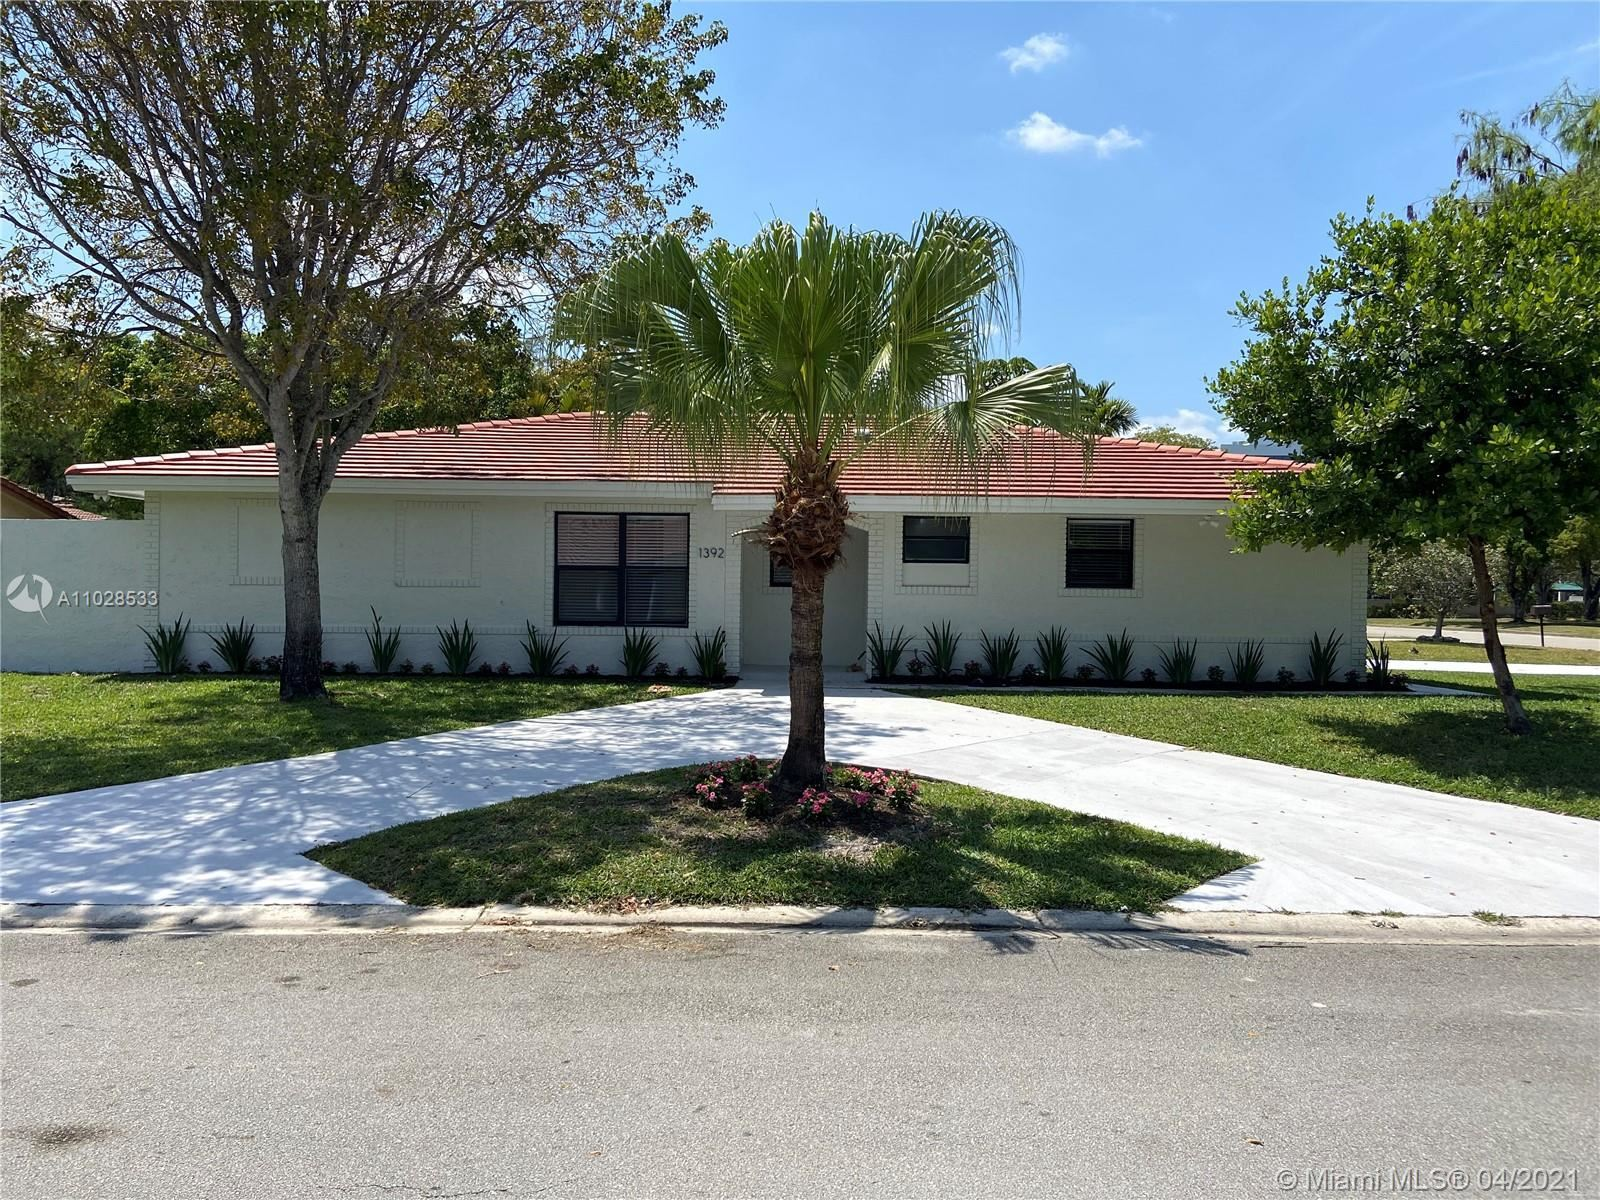 1392 NW 93rd Ter, Coral Springs, FL 33071 - #: A11028533